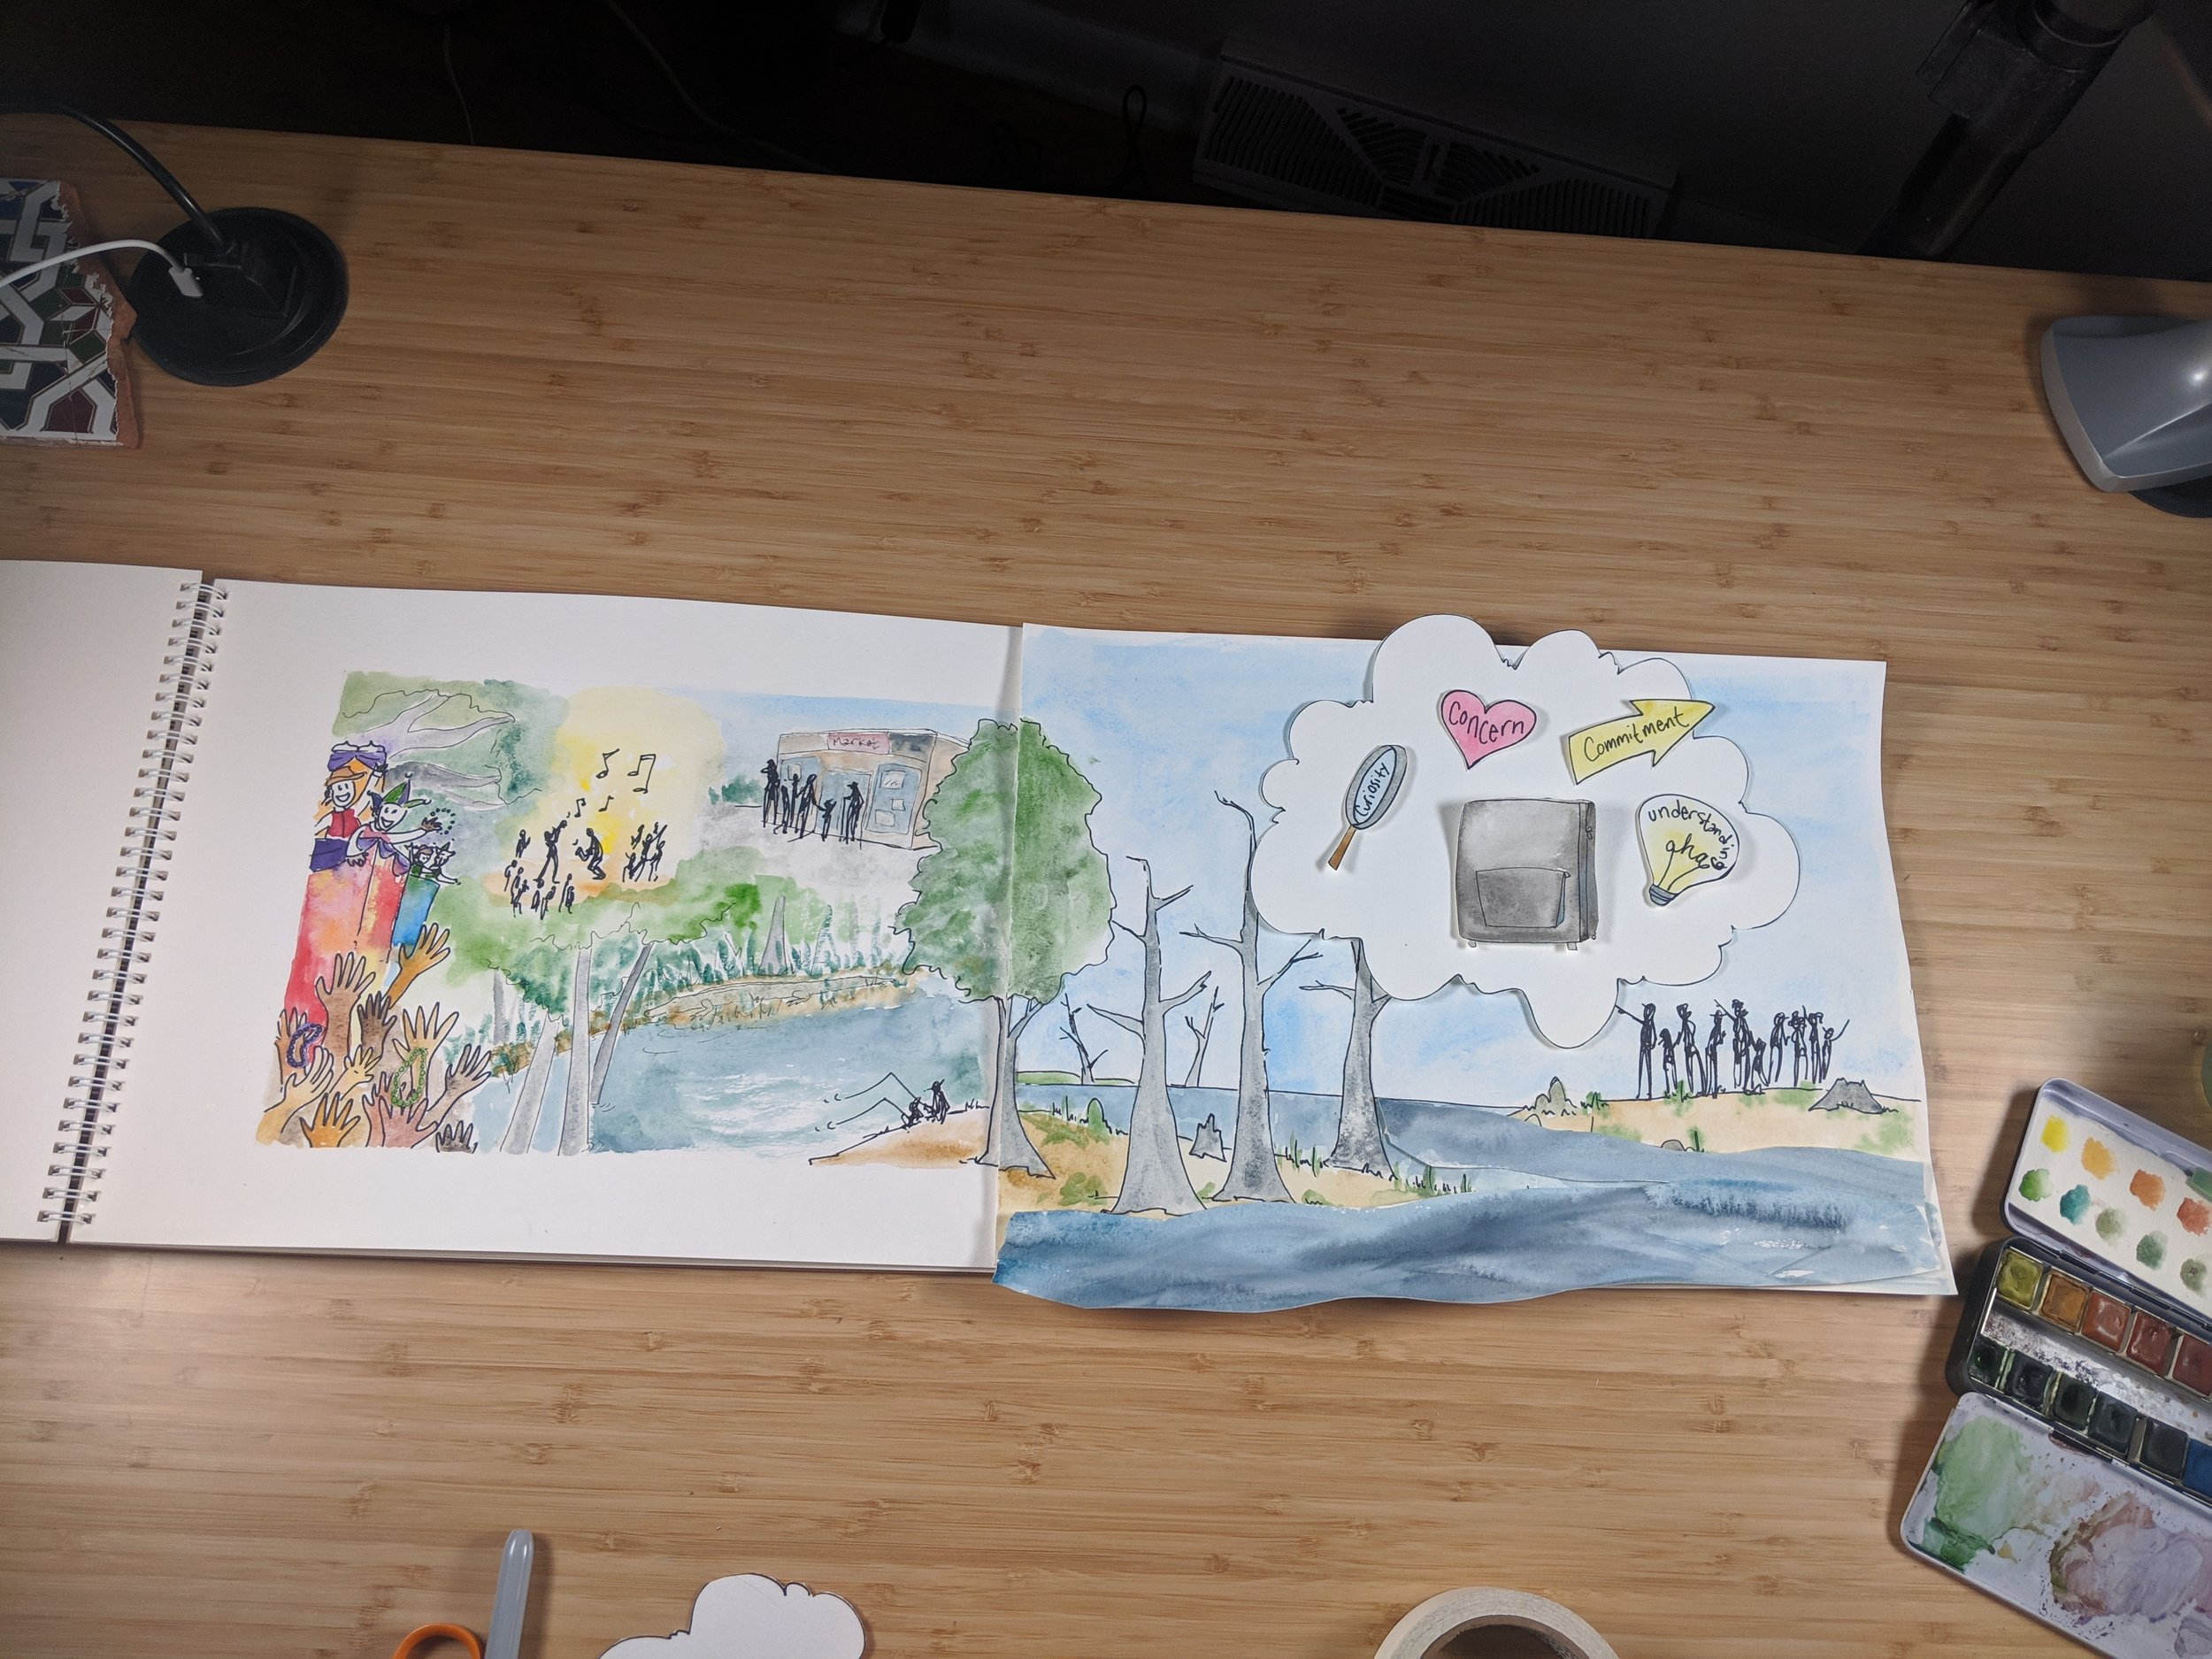 In the Studio:  Filming a new  illustrated video  for the National Park Service Climate Change Response Program, creating digital illustrations, and prepping for a lot of travel next week.